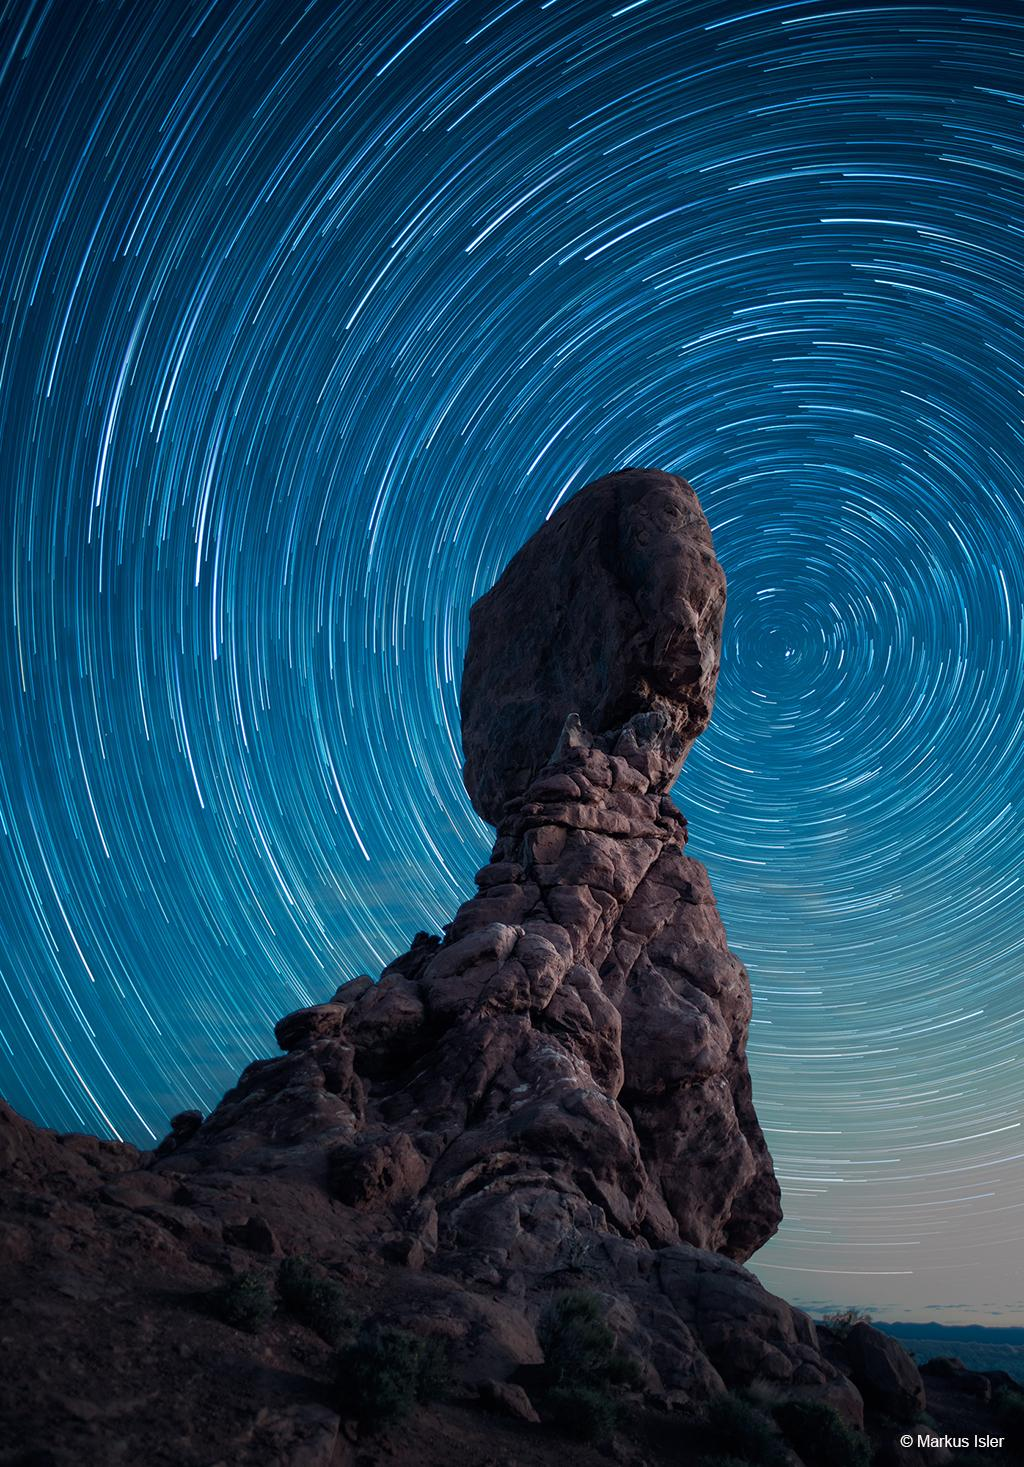 Today's Photo Of The Day is Revolving around the Balanced Rock by Markus Isler. Location: Arches National Park, Utah.